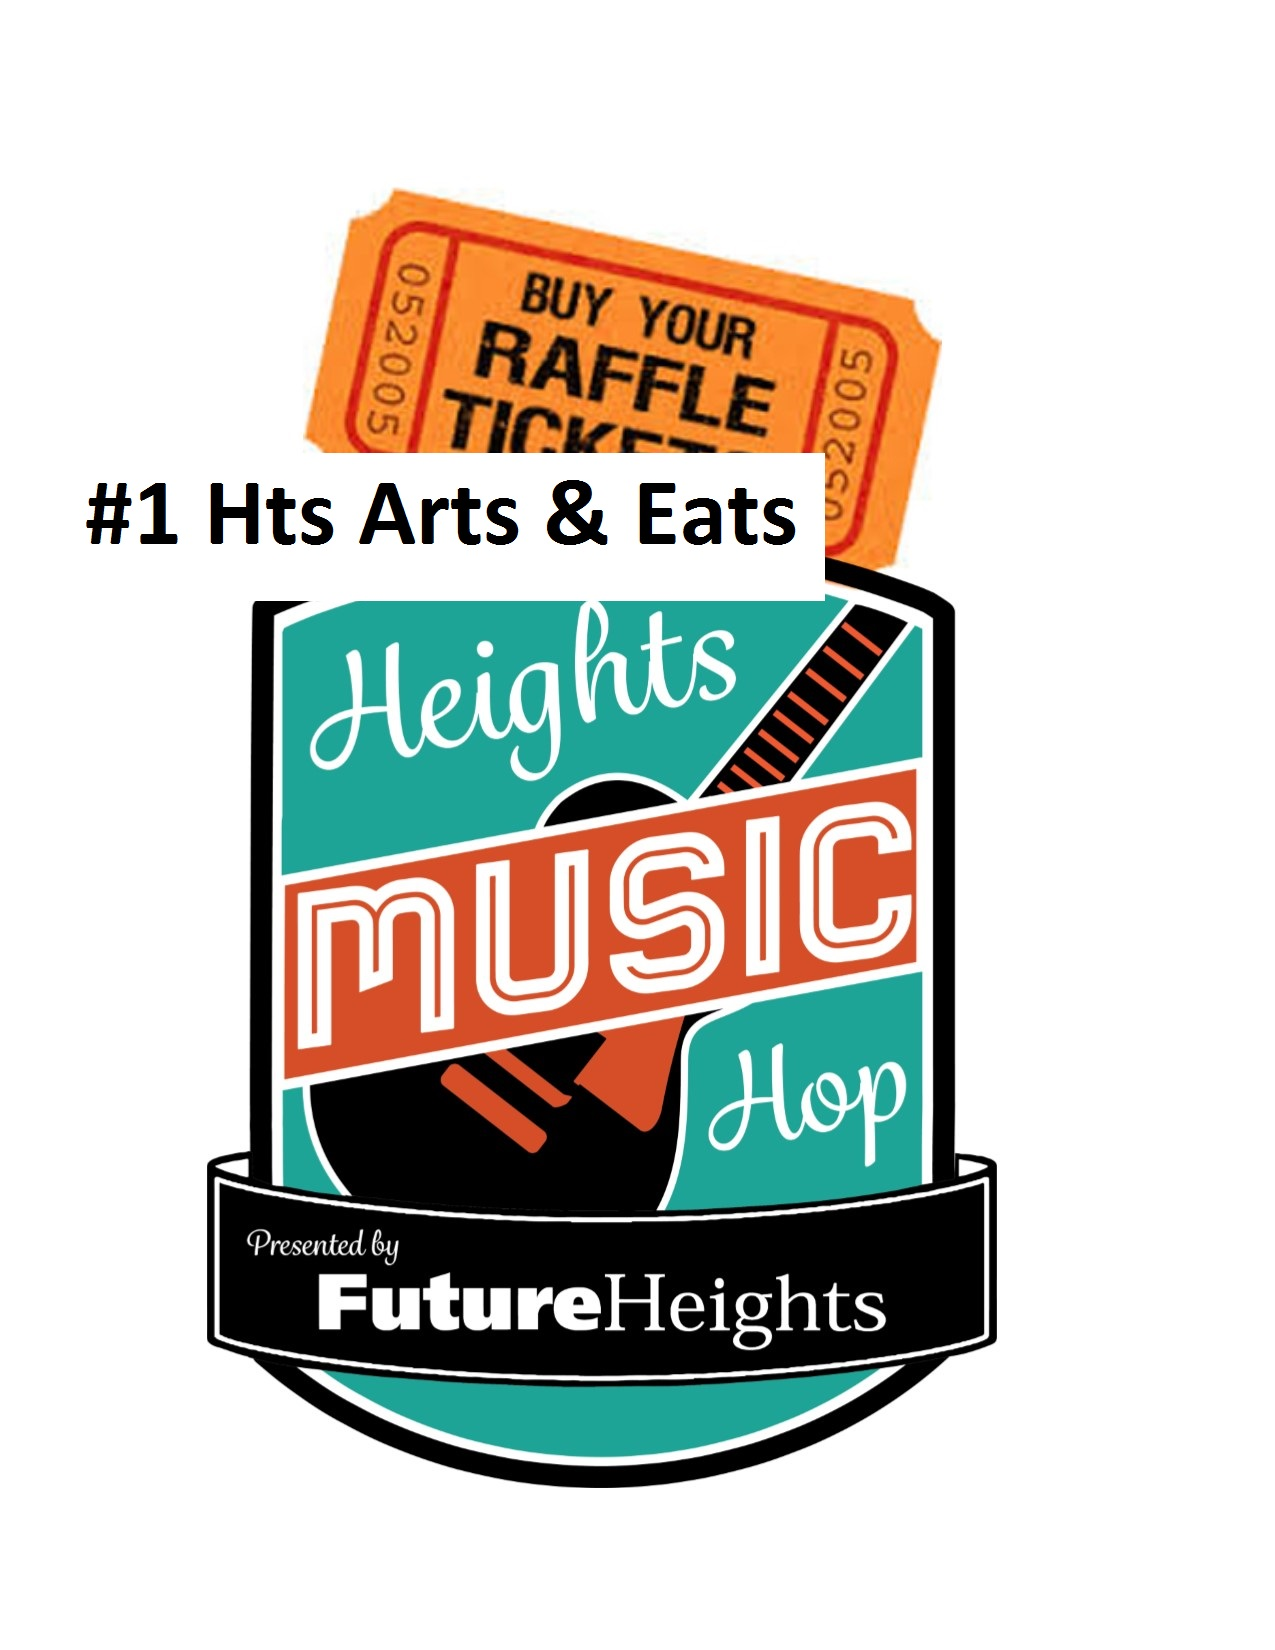 #1 Heights Arts & Eats Package